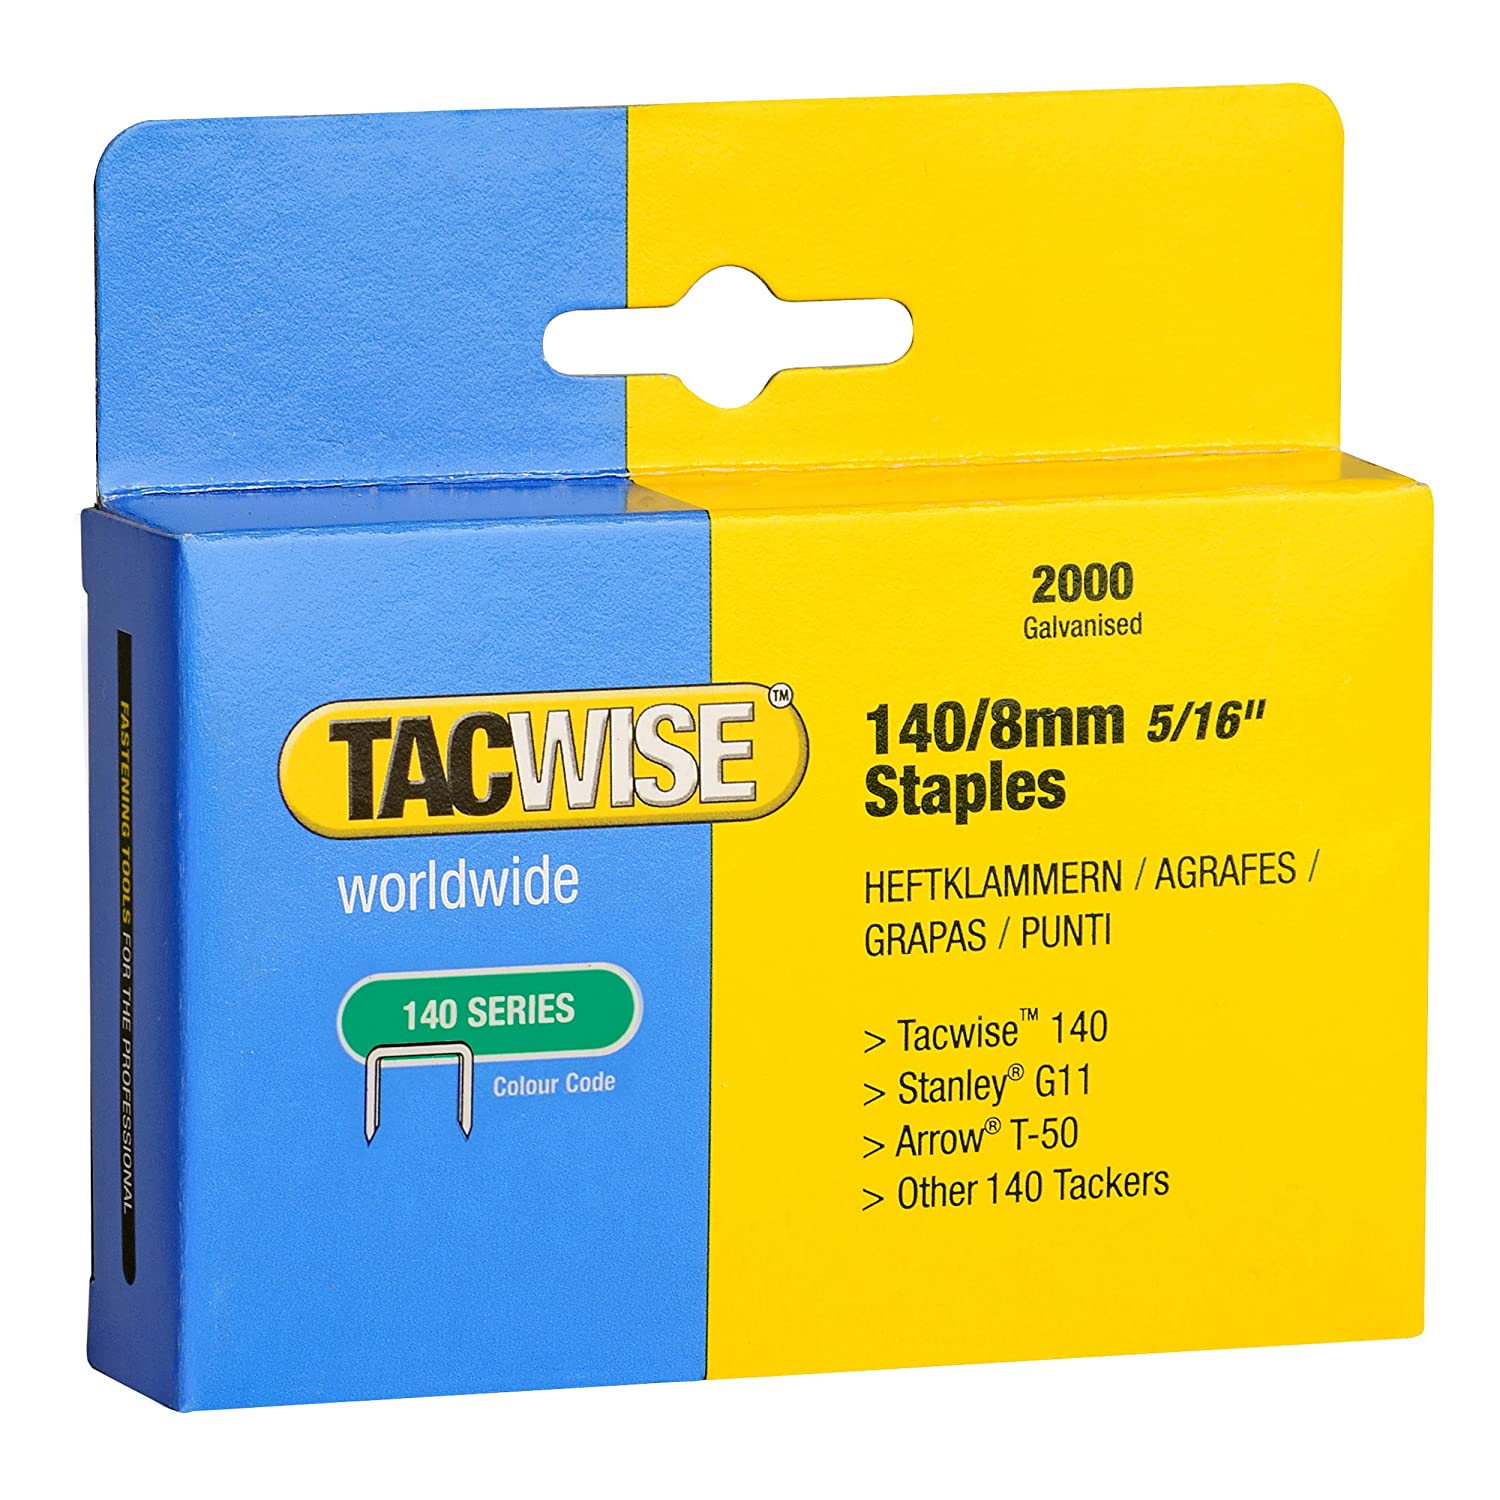 tacwise 140 14mm staples for staple gun 2000